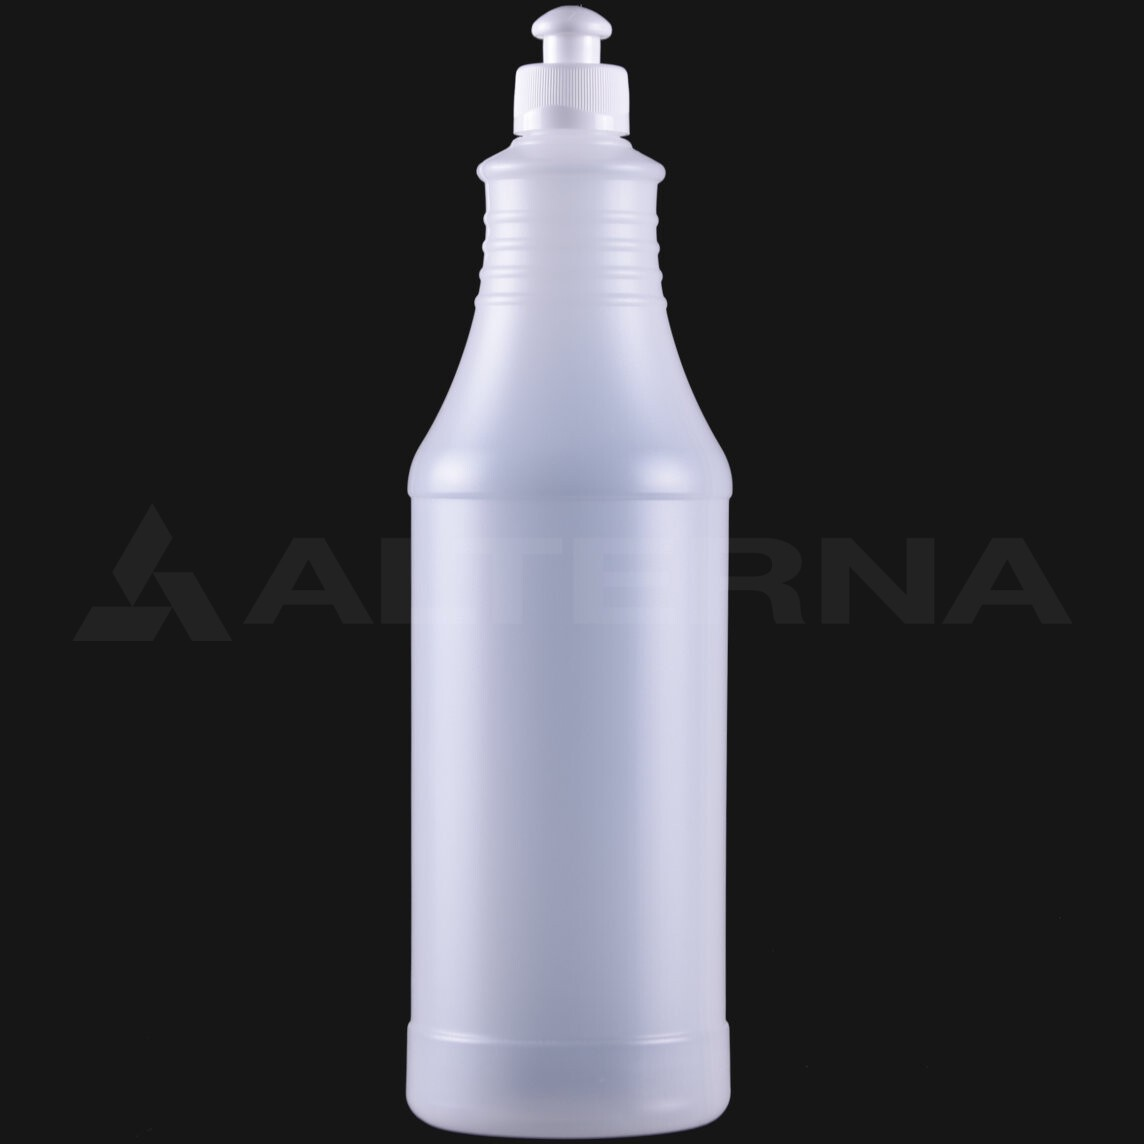 1000 ml HDPE Bottle with 28 mm Push Pull Cap